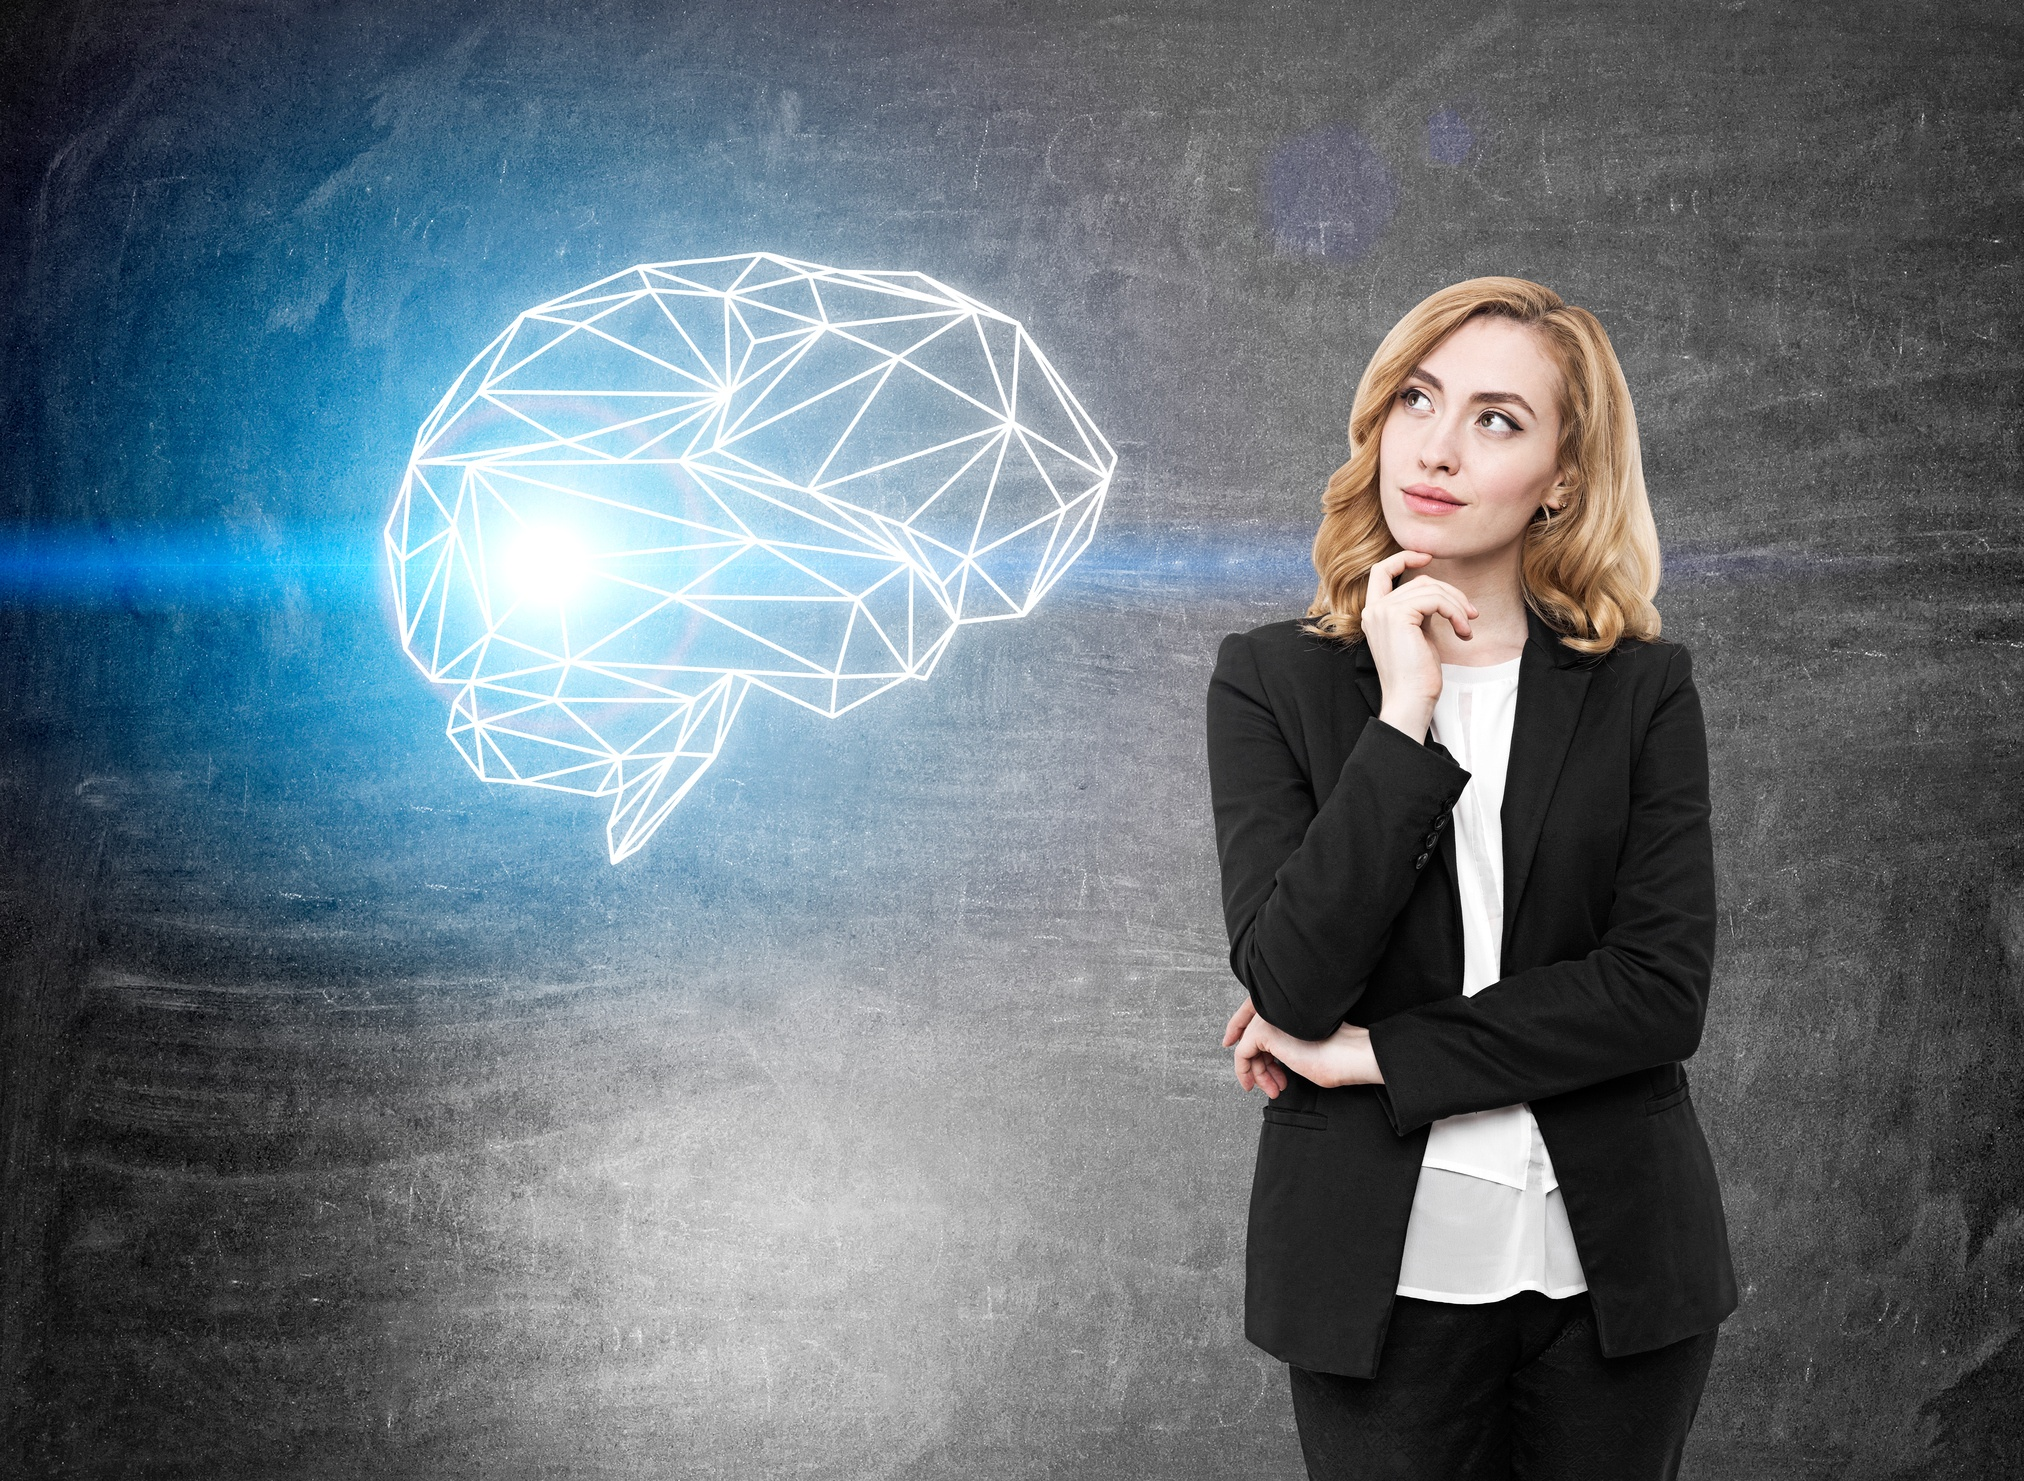 Woman considers rewiring her brain through a mindfulness practice